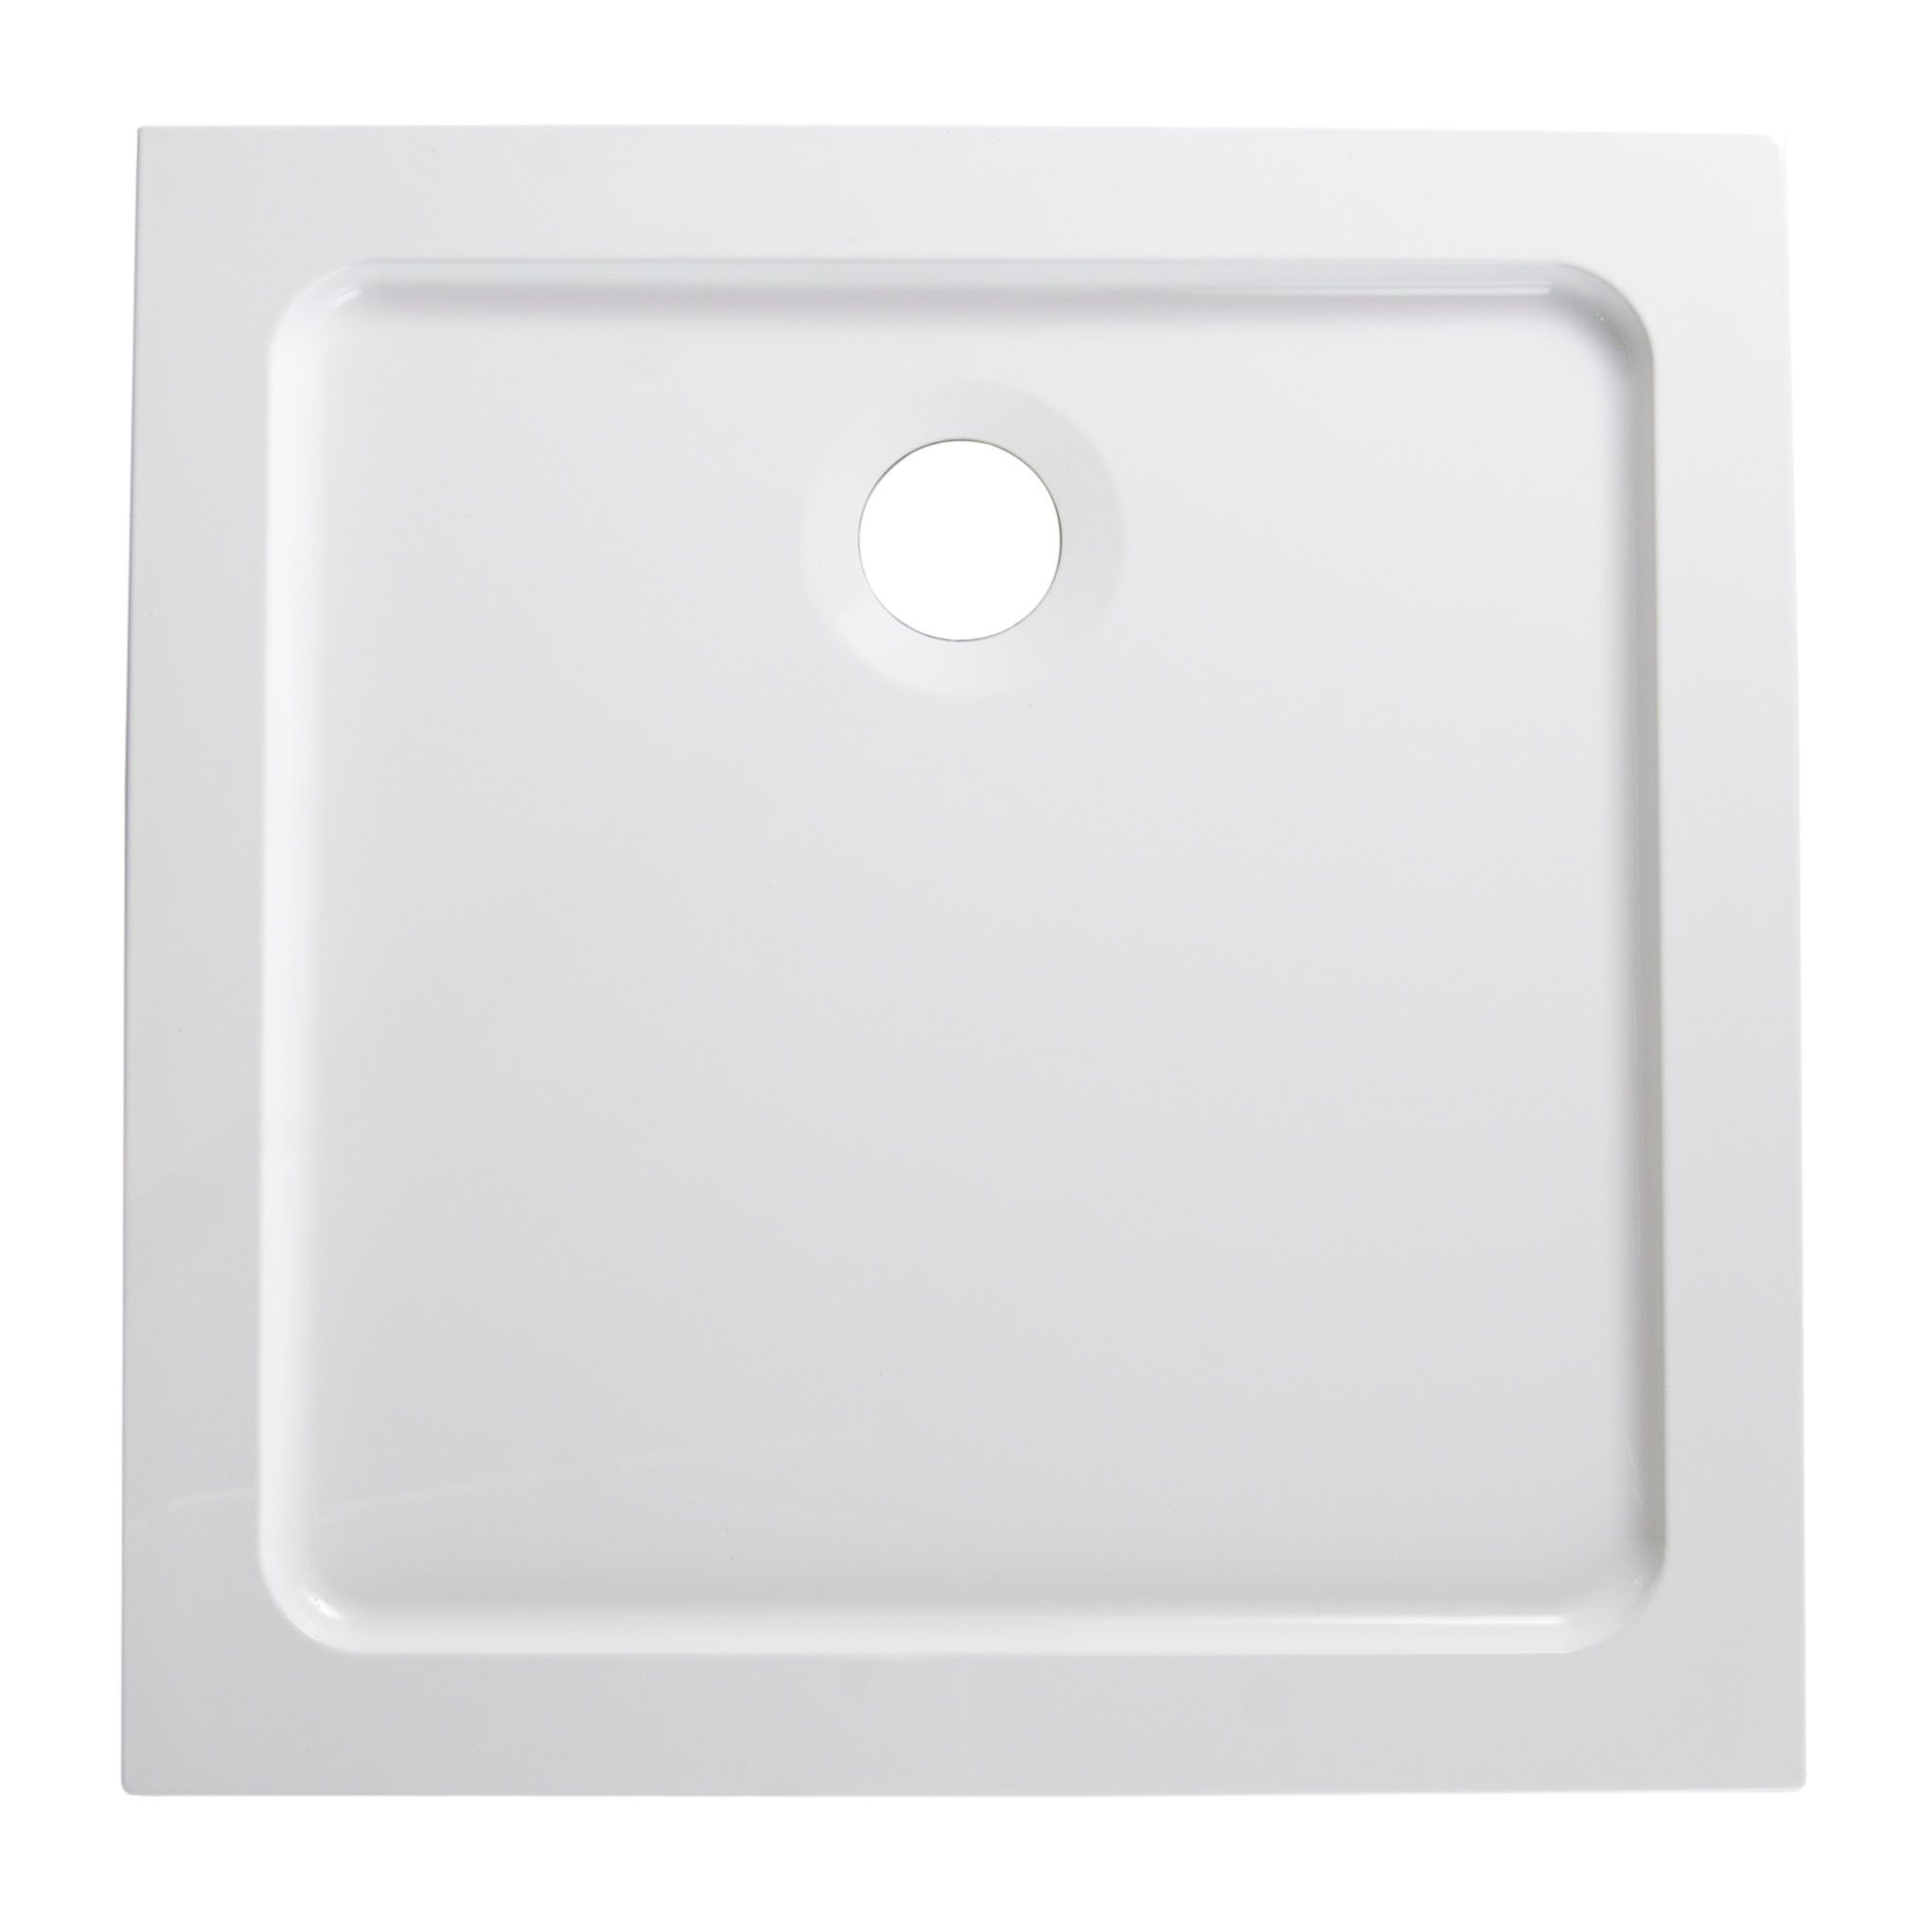 B q low profile square shower tray l 760mm w 760mm d B q bathroom design service